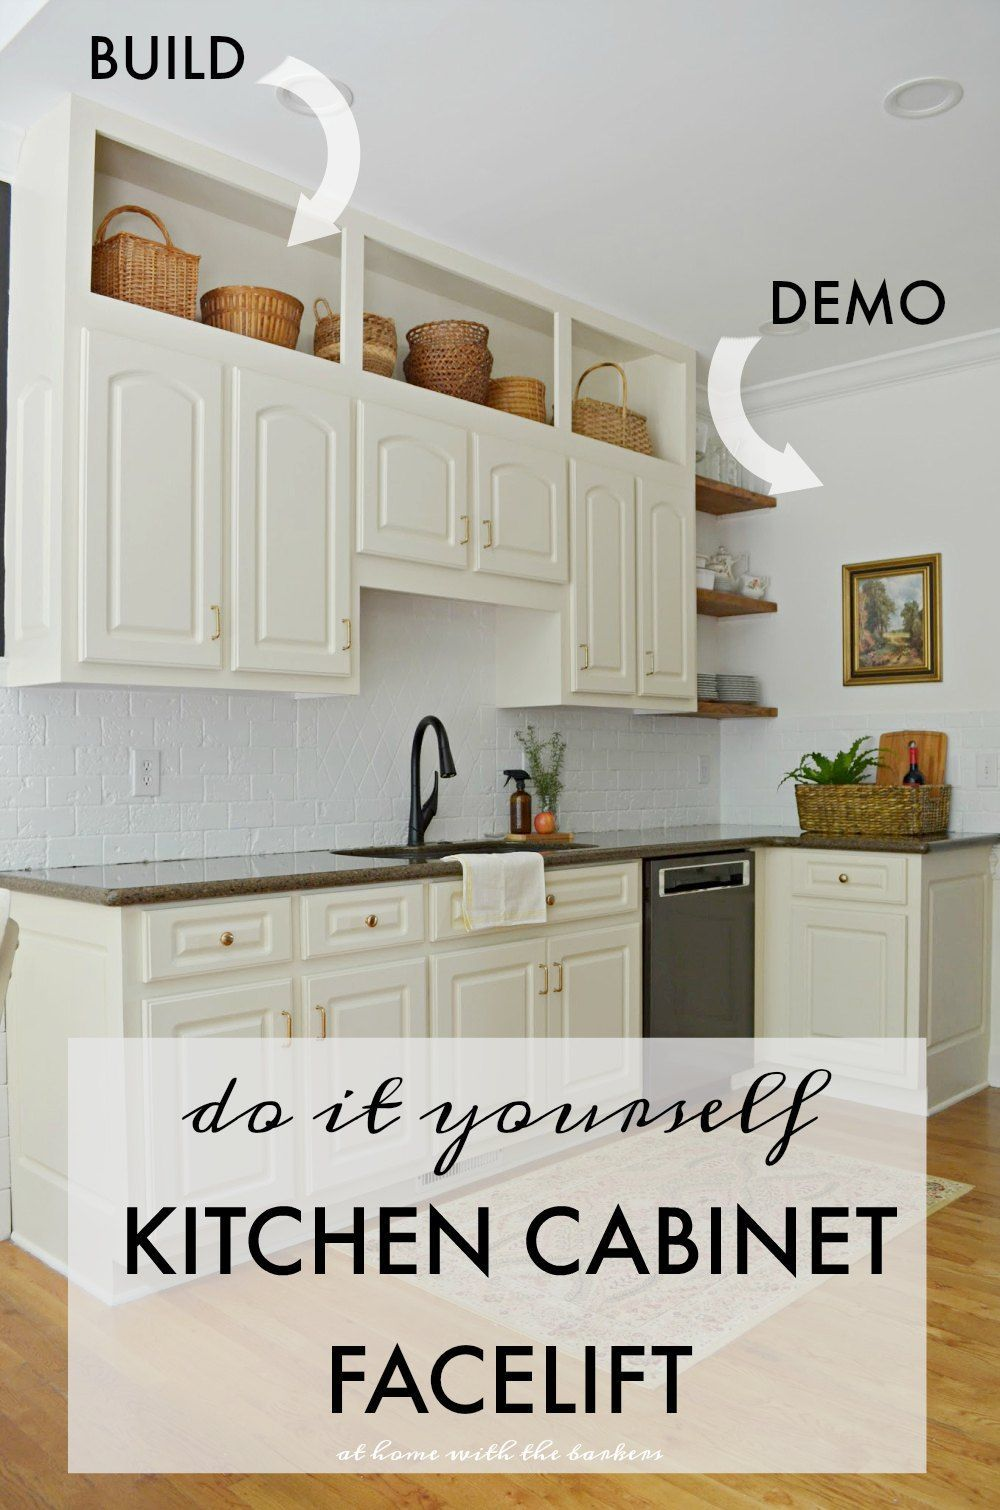 Kitchen Cabinets Above Kitchen Cabinets Kitchen Design Cabinet Kitchen Diy Mak In 2020 Kitchen Cabinets Decor Upper Kitchen Cabinets Above Kitchen Cabinets